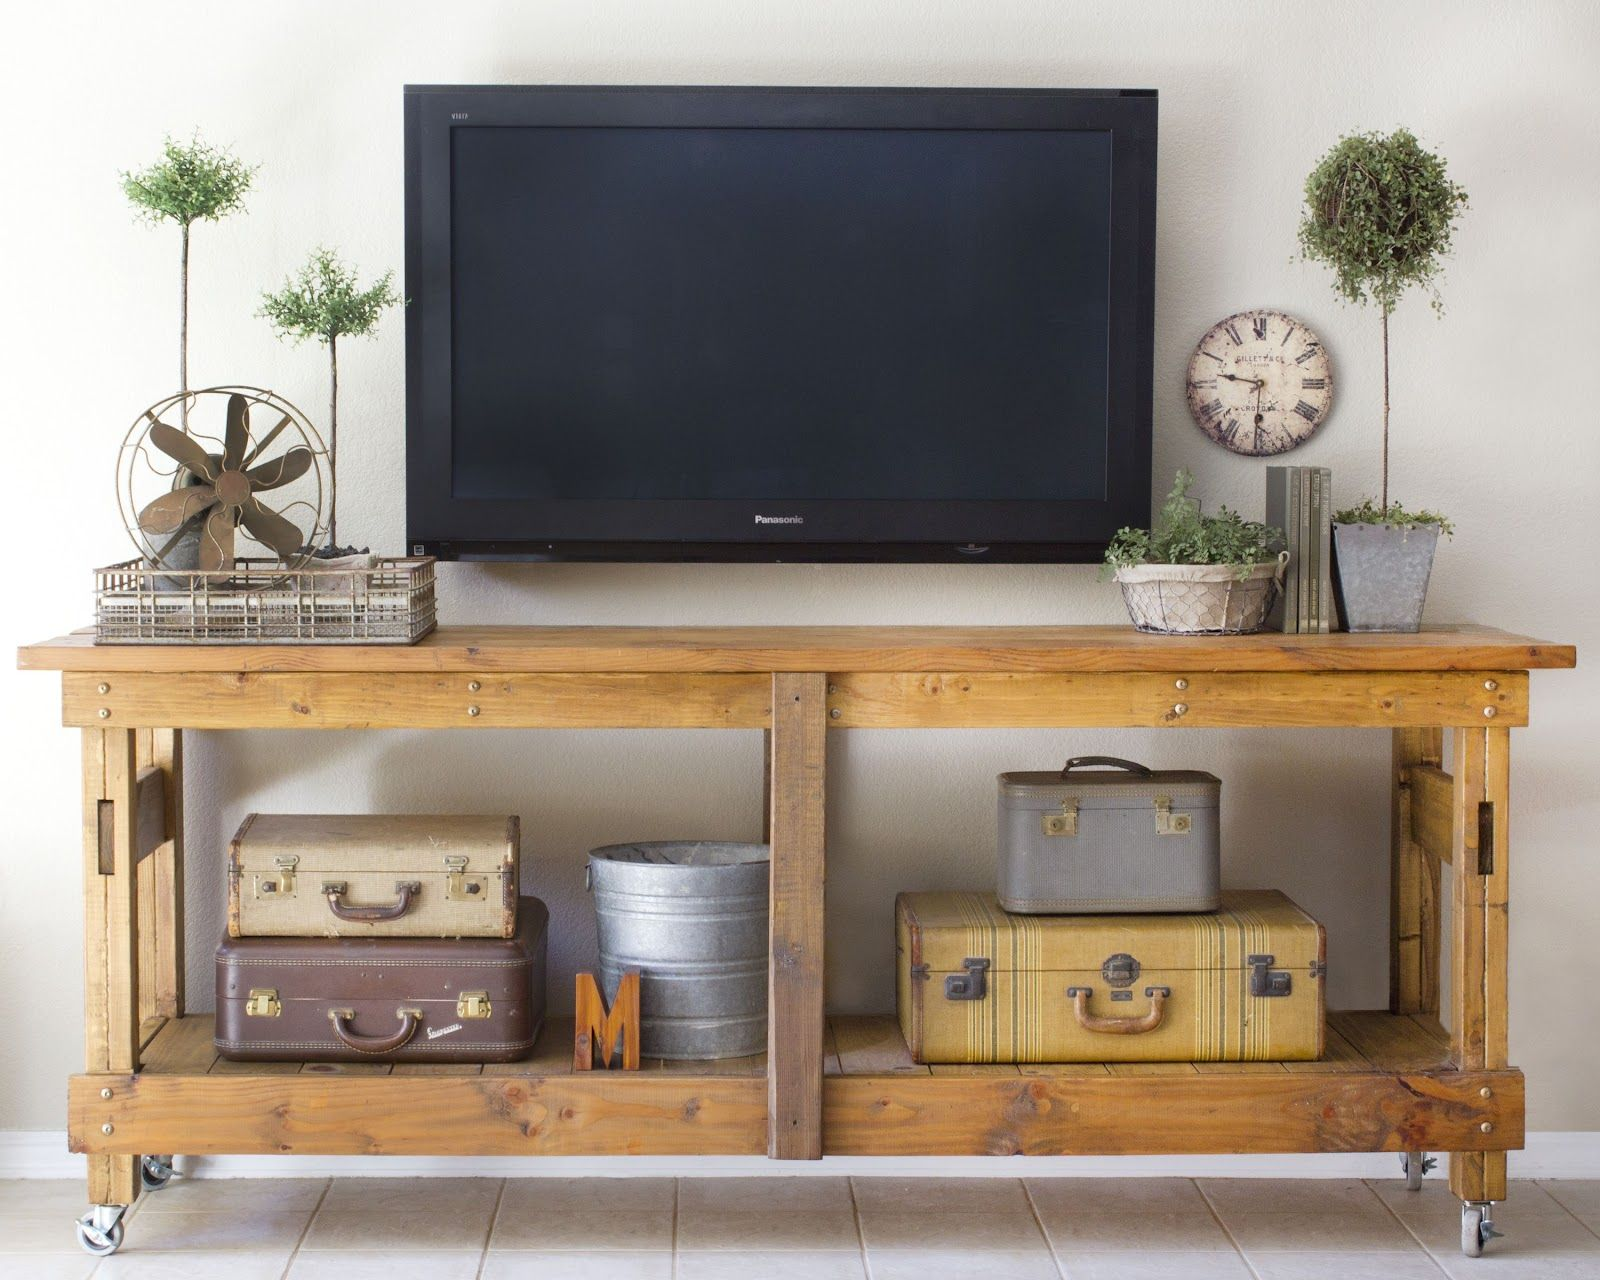 Decorate Wall Around Tv Decorate Around The Tv With A Workbench Console And